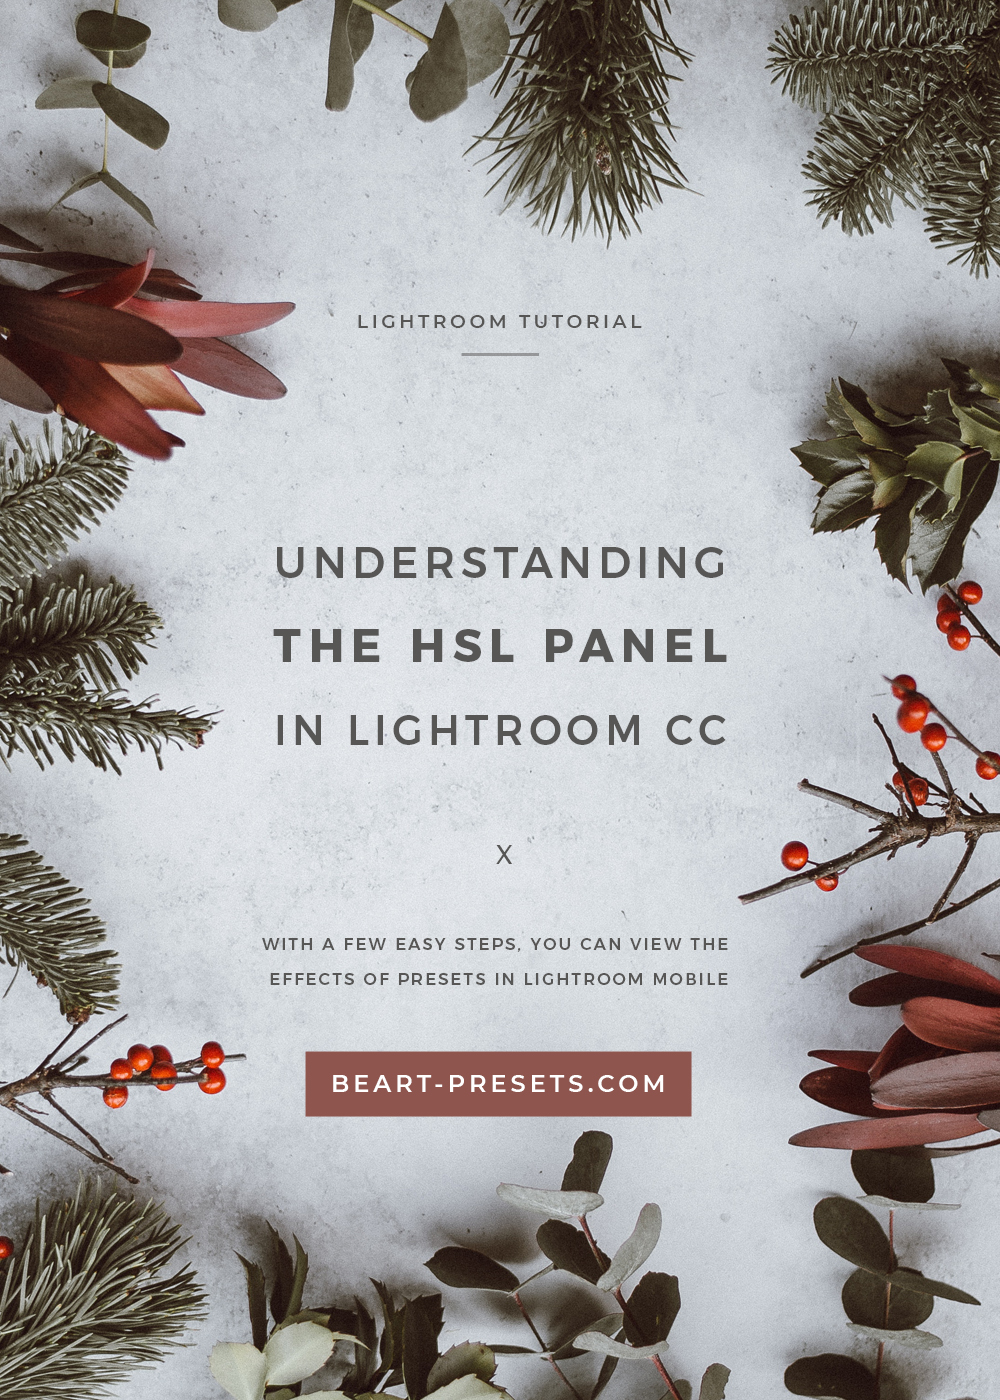 UNDERSTANDING THE HSL PANEL IN LIGHTROOM